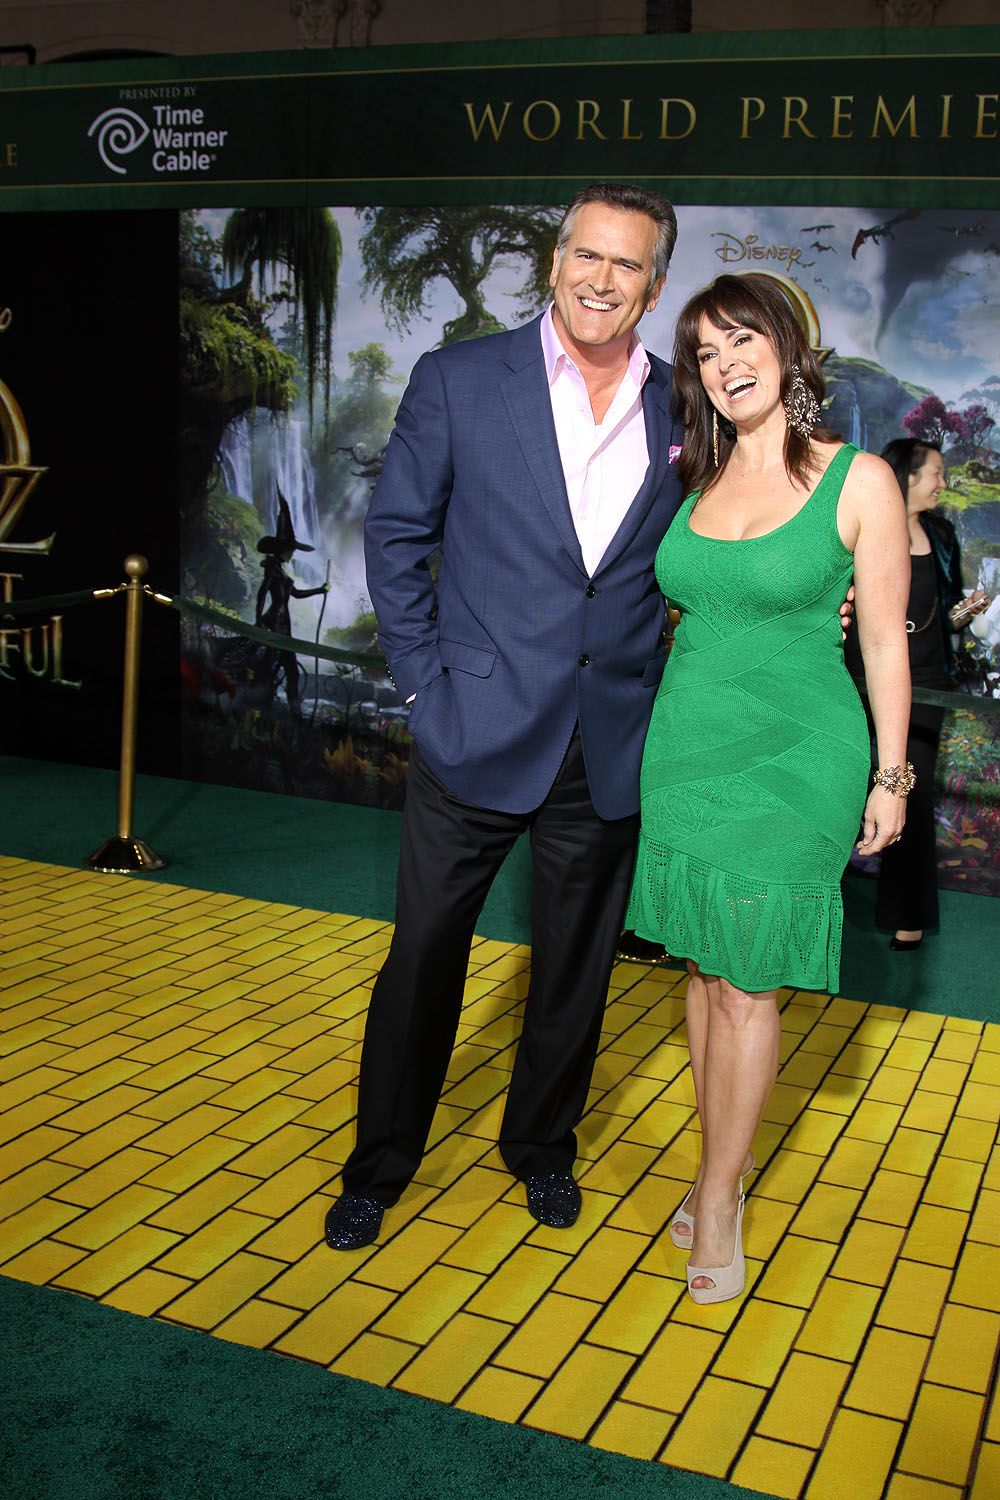 Bruce Campbell and wife Ida Gearon at World Premiere of OZ THE GREAT AND POWERFUL   ©2013 Sue Schneider